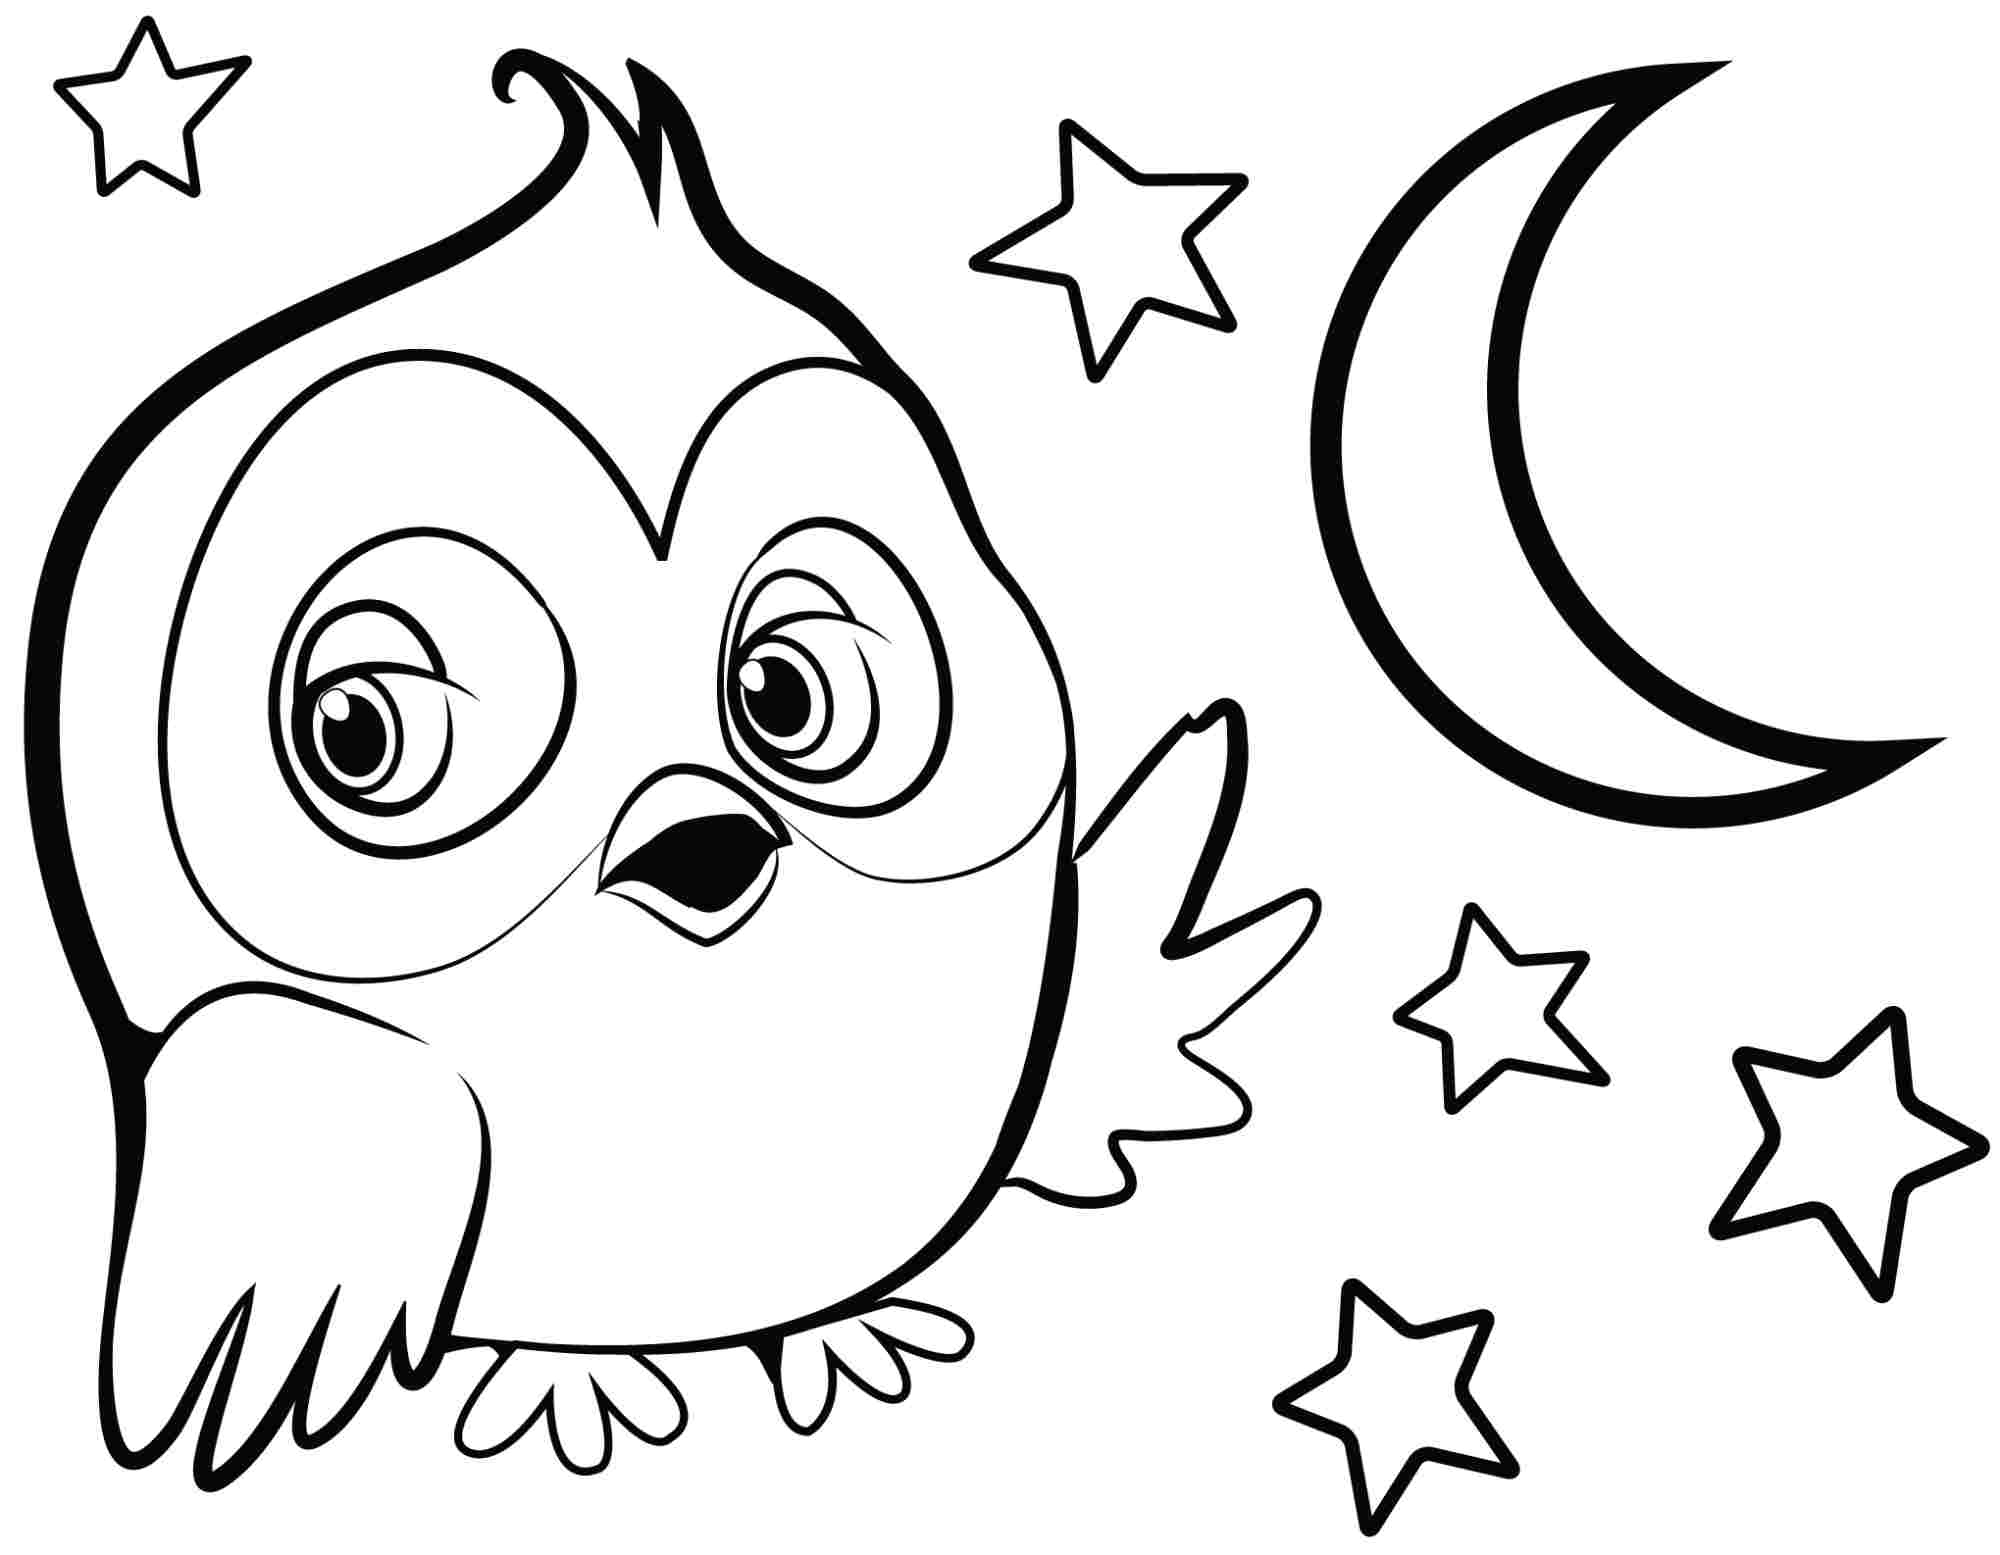 Easy Animal Coloring Pages For Kids At Getcolorings